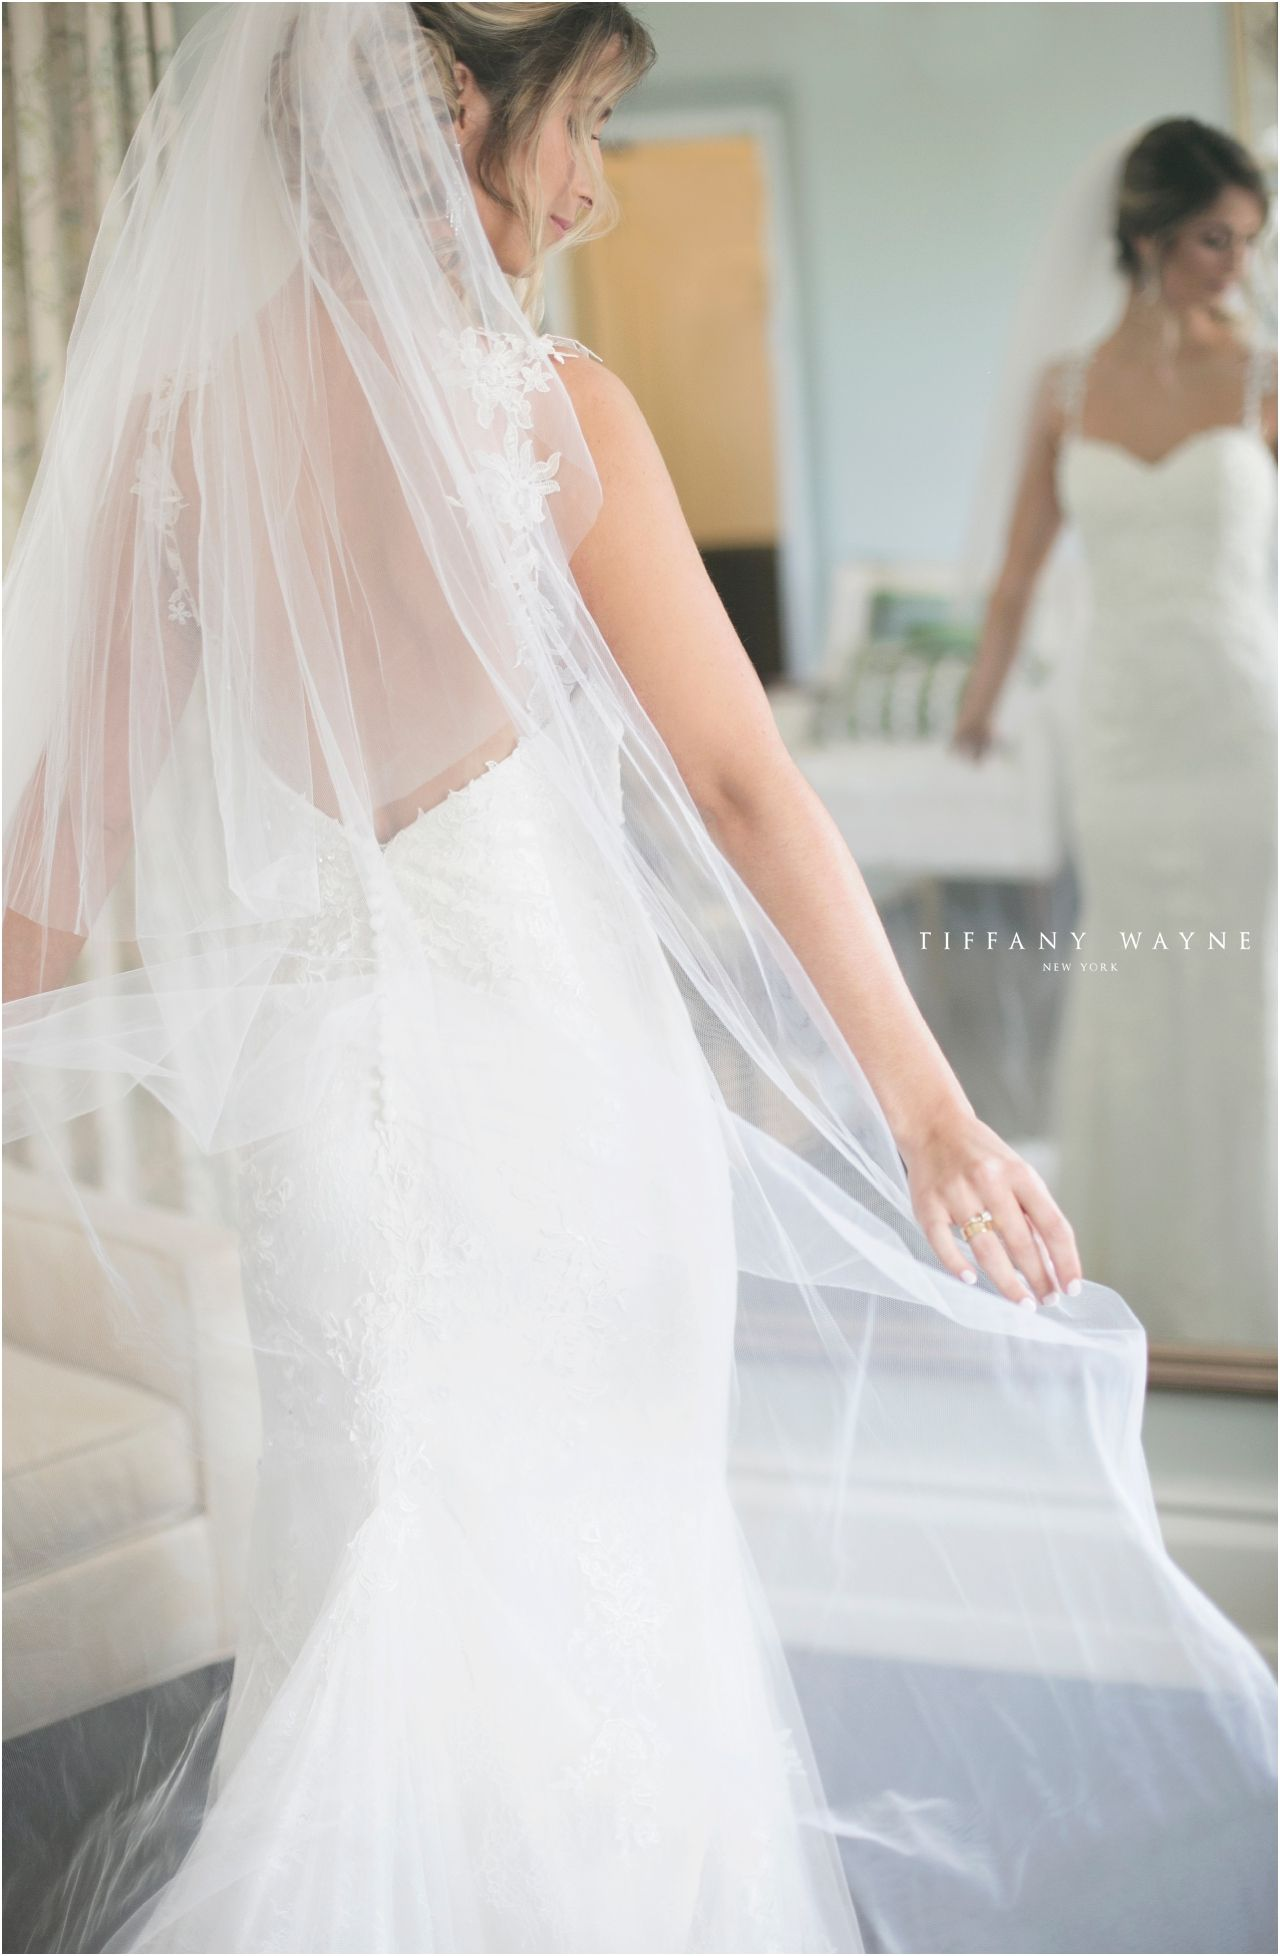 Bride getting ready photography ideas and inspiration bride putting